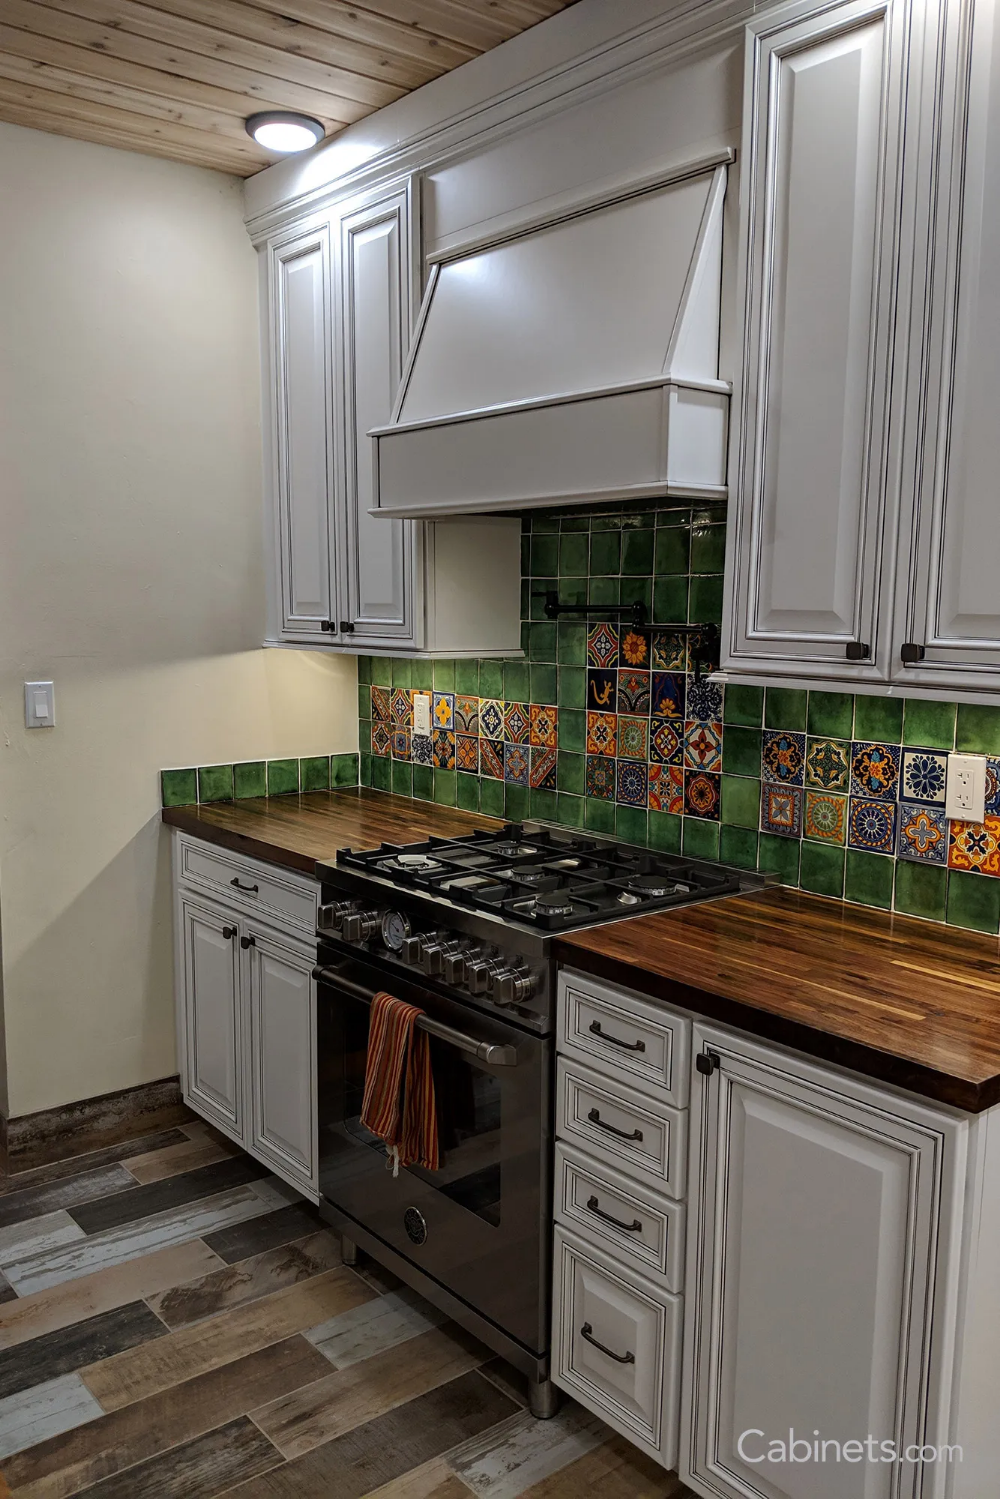 Transitional White Kitchen With A Mexican Tile Backsplash Cabinets Com Mexican Style Kitchens Mexican Tile Backsplash Mexican Tile Kitchen Backsplash